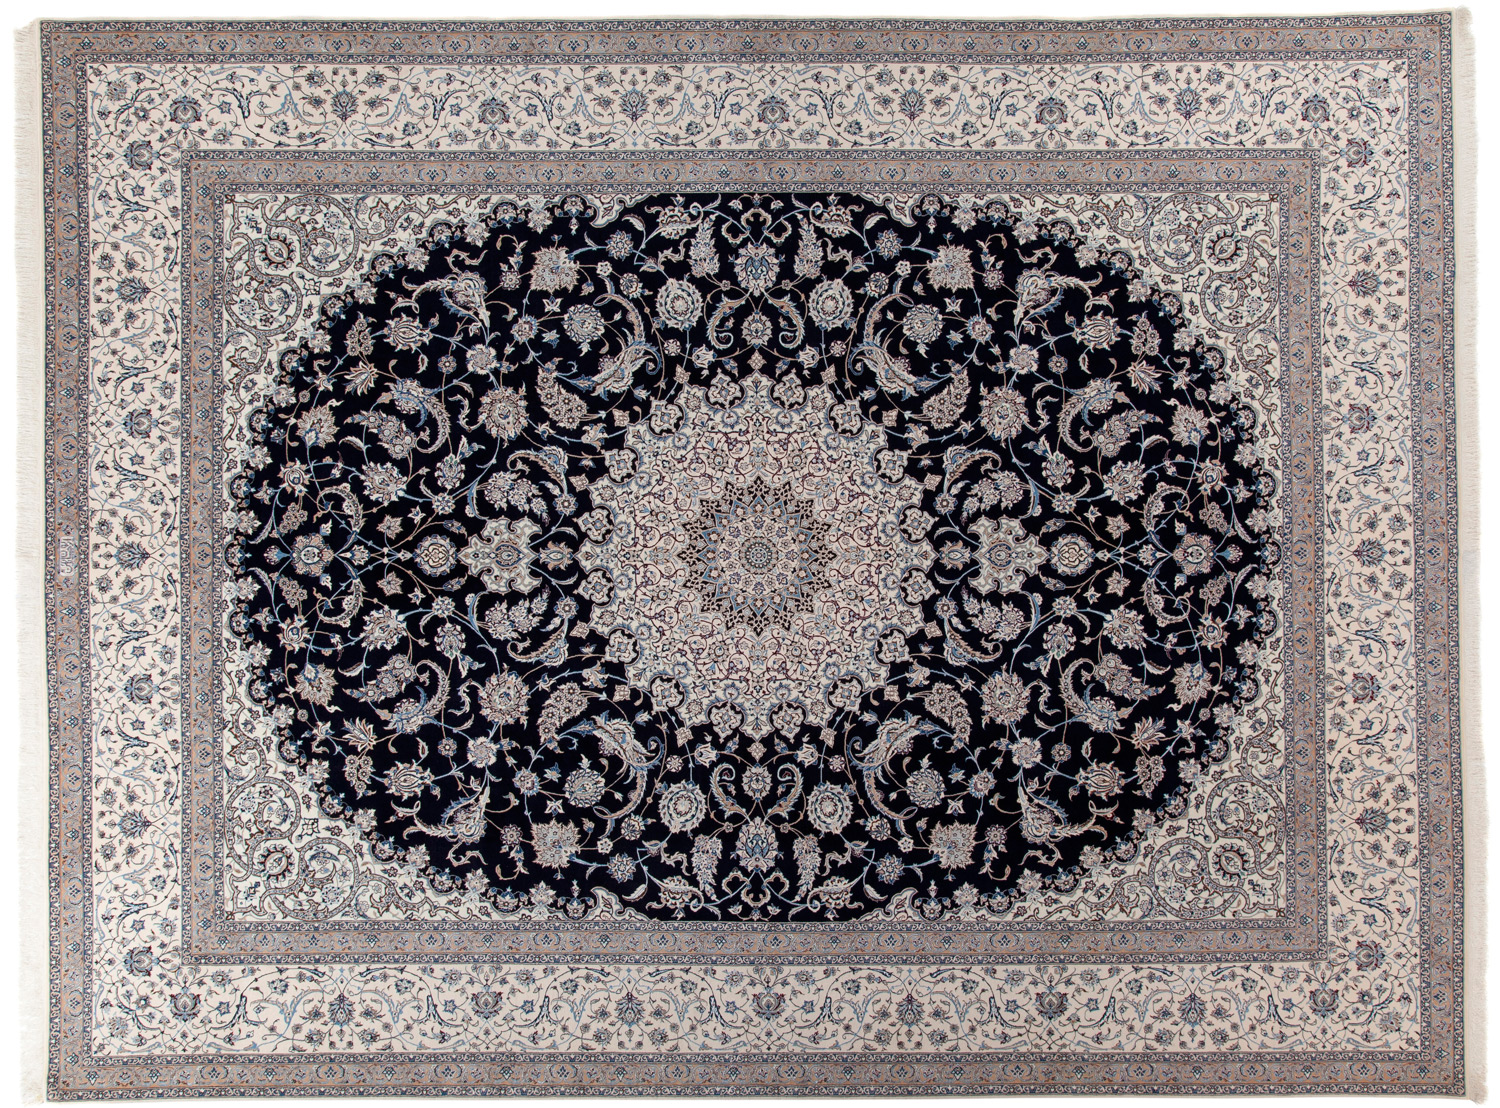 Fine Quality Signature Persian Rug